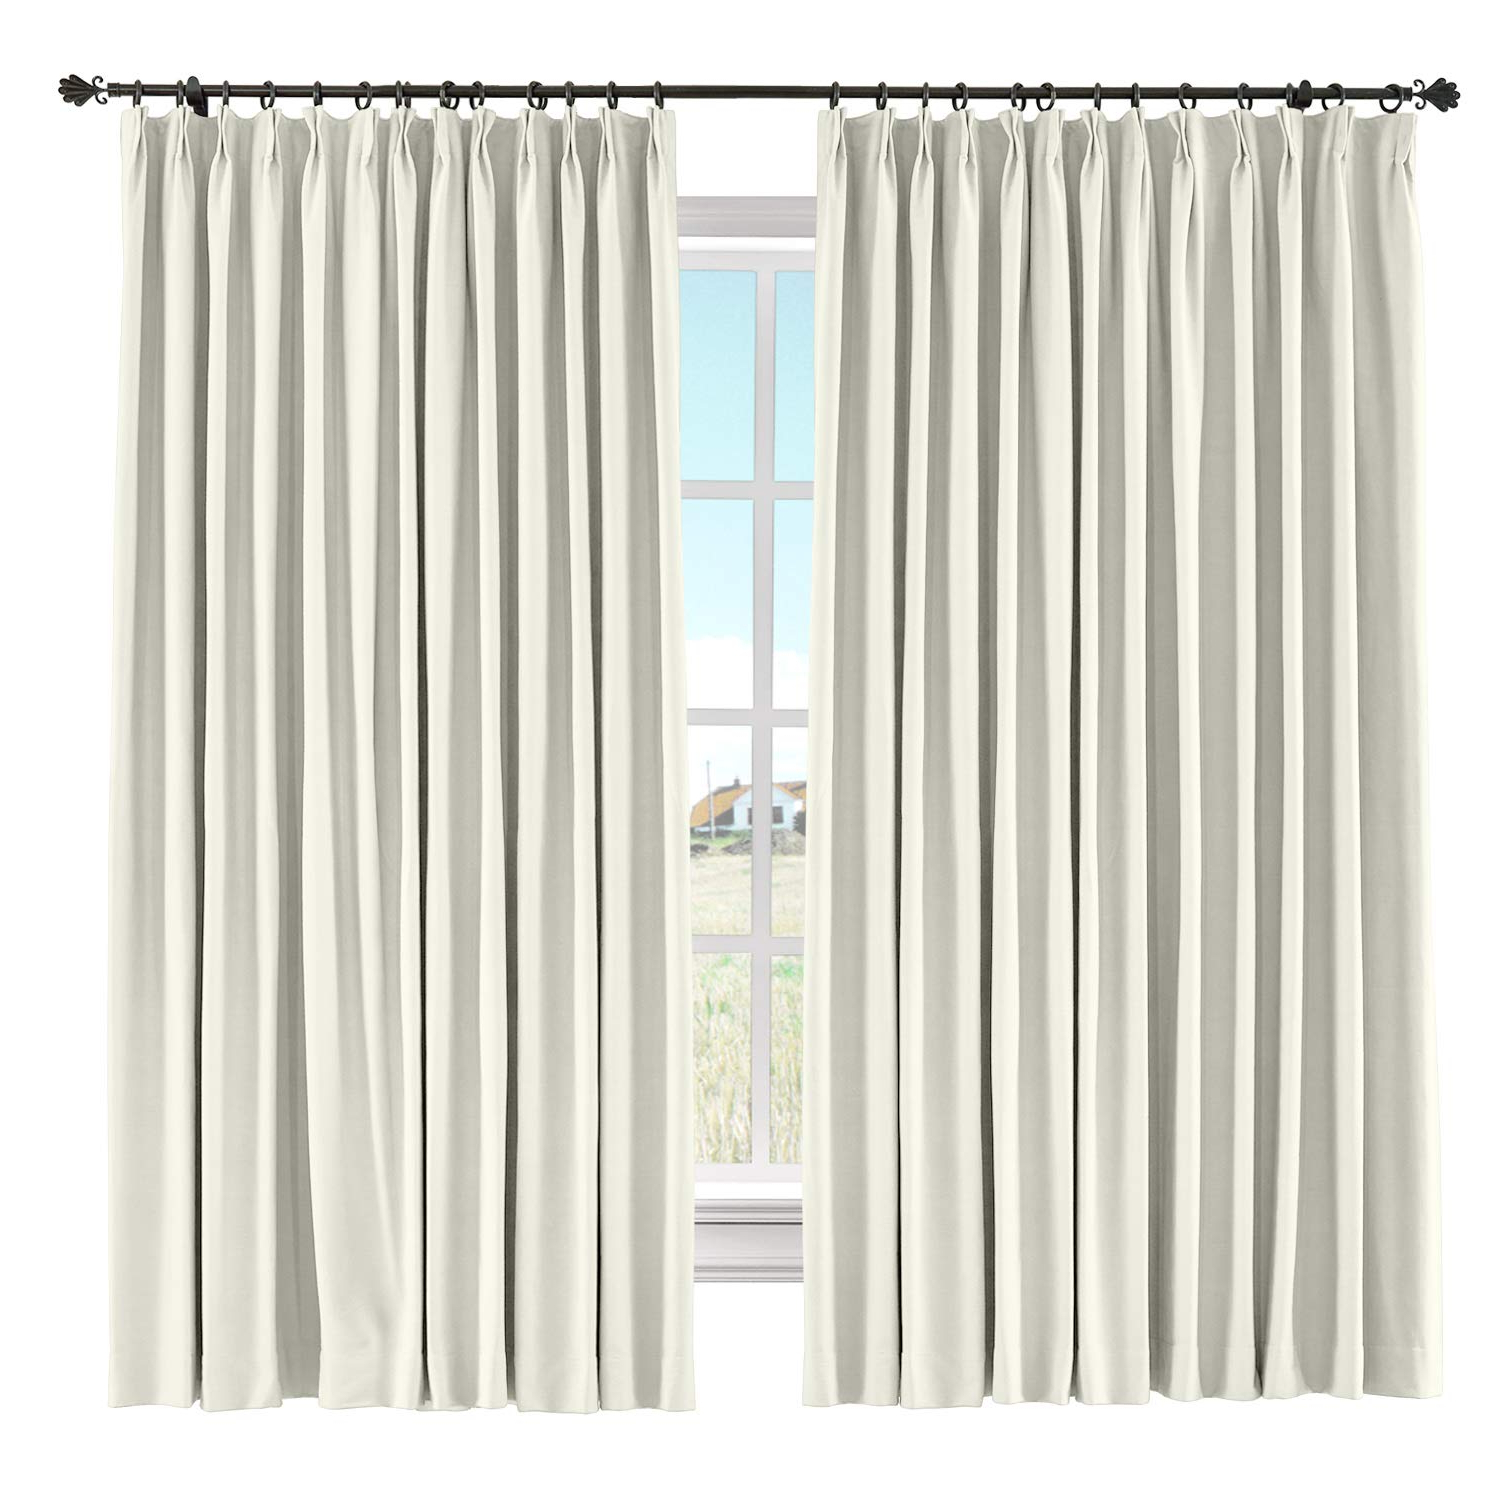 "Most Recently Released Solid Country Cotton Linen Weave Curtain Panels Pertaining To Chadmade Light Blocking Curtain Panel Cotton Linen Drape Window Treatments Curtain Solid Pinch Pleated Curtain Window Short Curtain, 60"" W X 108"" L (View 18 of 20)"